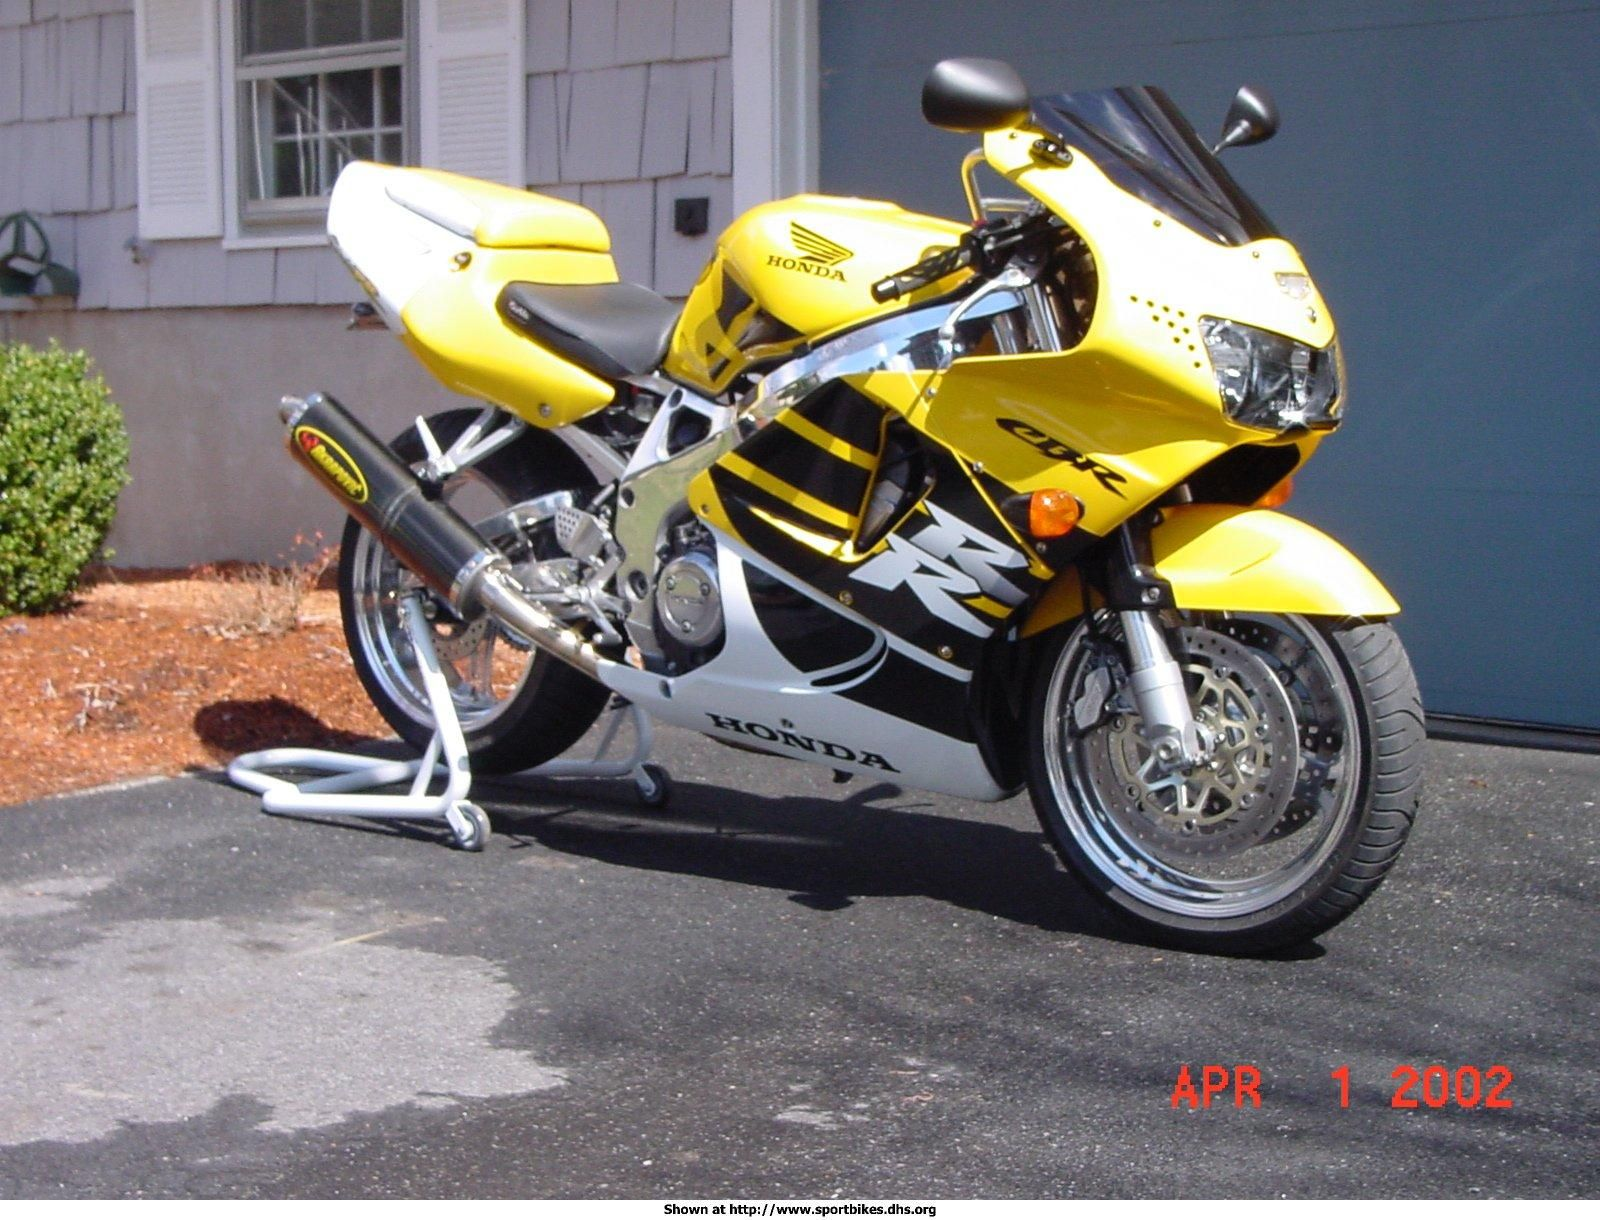 1999 CBR 900 RR Fireblade. Love the chrome look on this